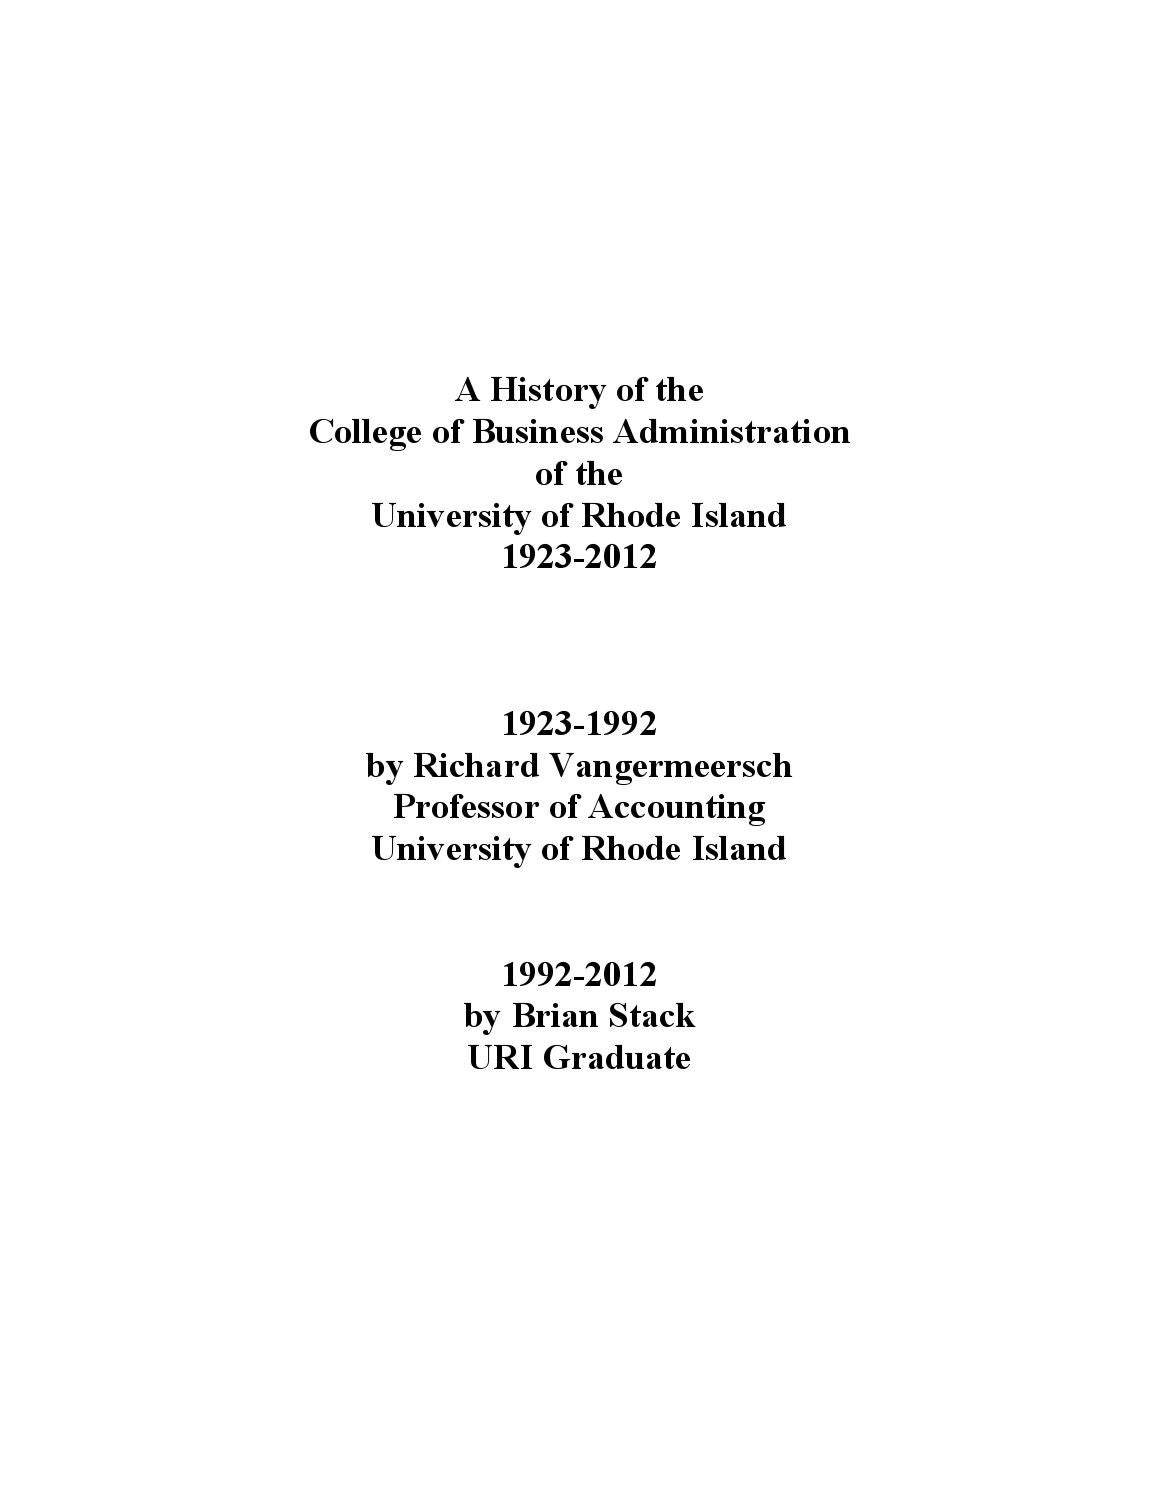 History of the University of Rhode Island College of Business ...